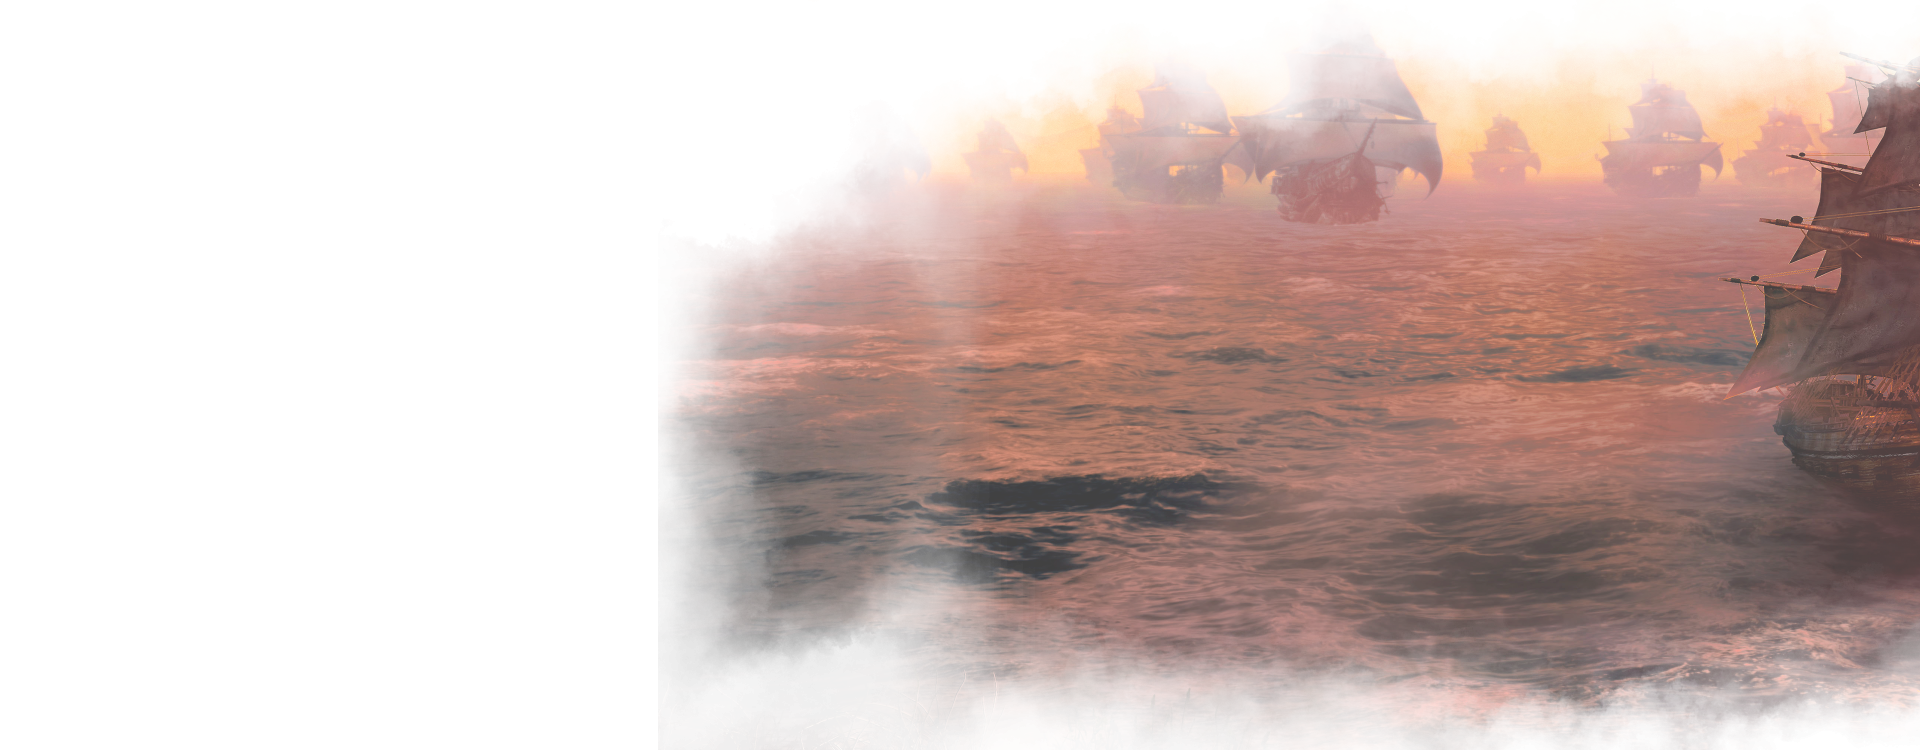 AOCG_G90_FV_FW_RT_1MS_BACKGROUND.png